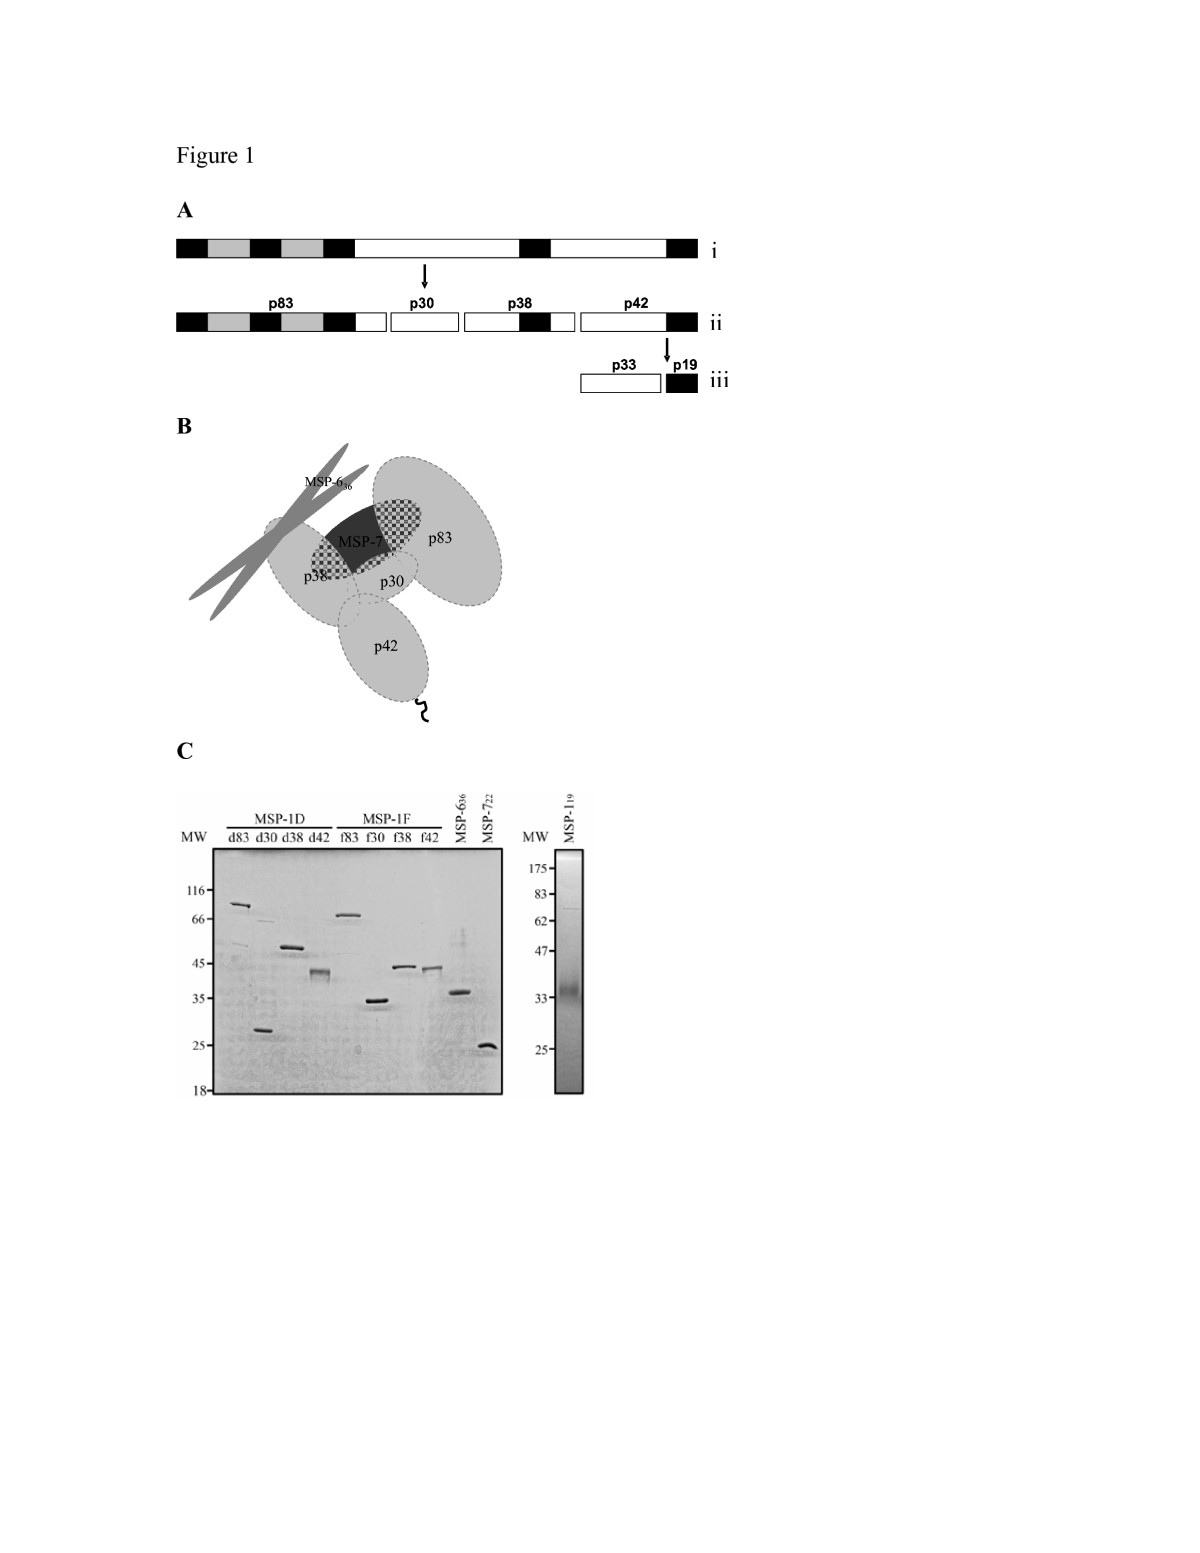 http://static-content.springer.com/image/art%3A10.1186%2F1475-2875-7-121/MediaObjects/12936_2008_Article_596_Fig1_HTML.jpg